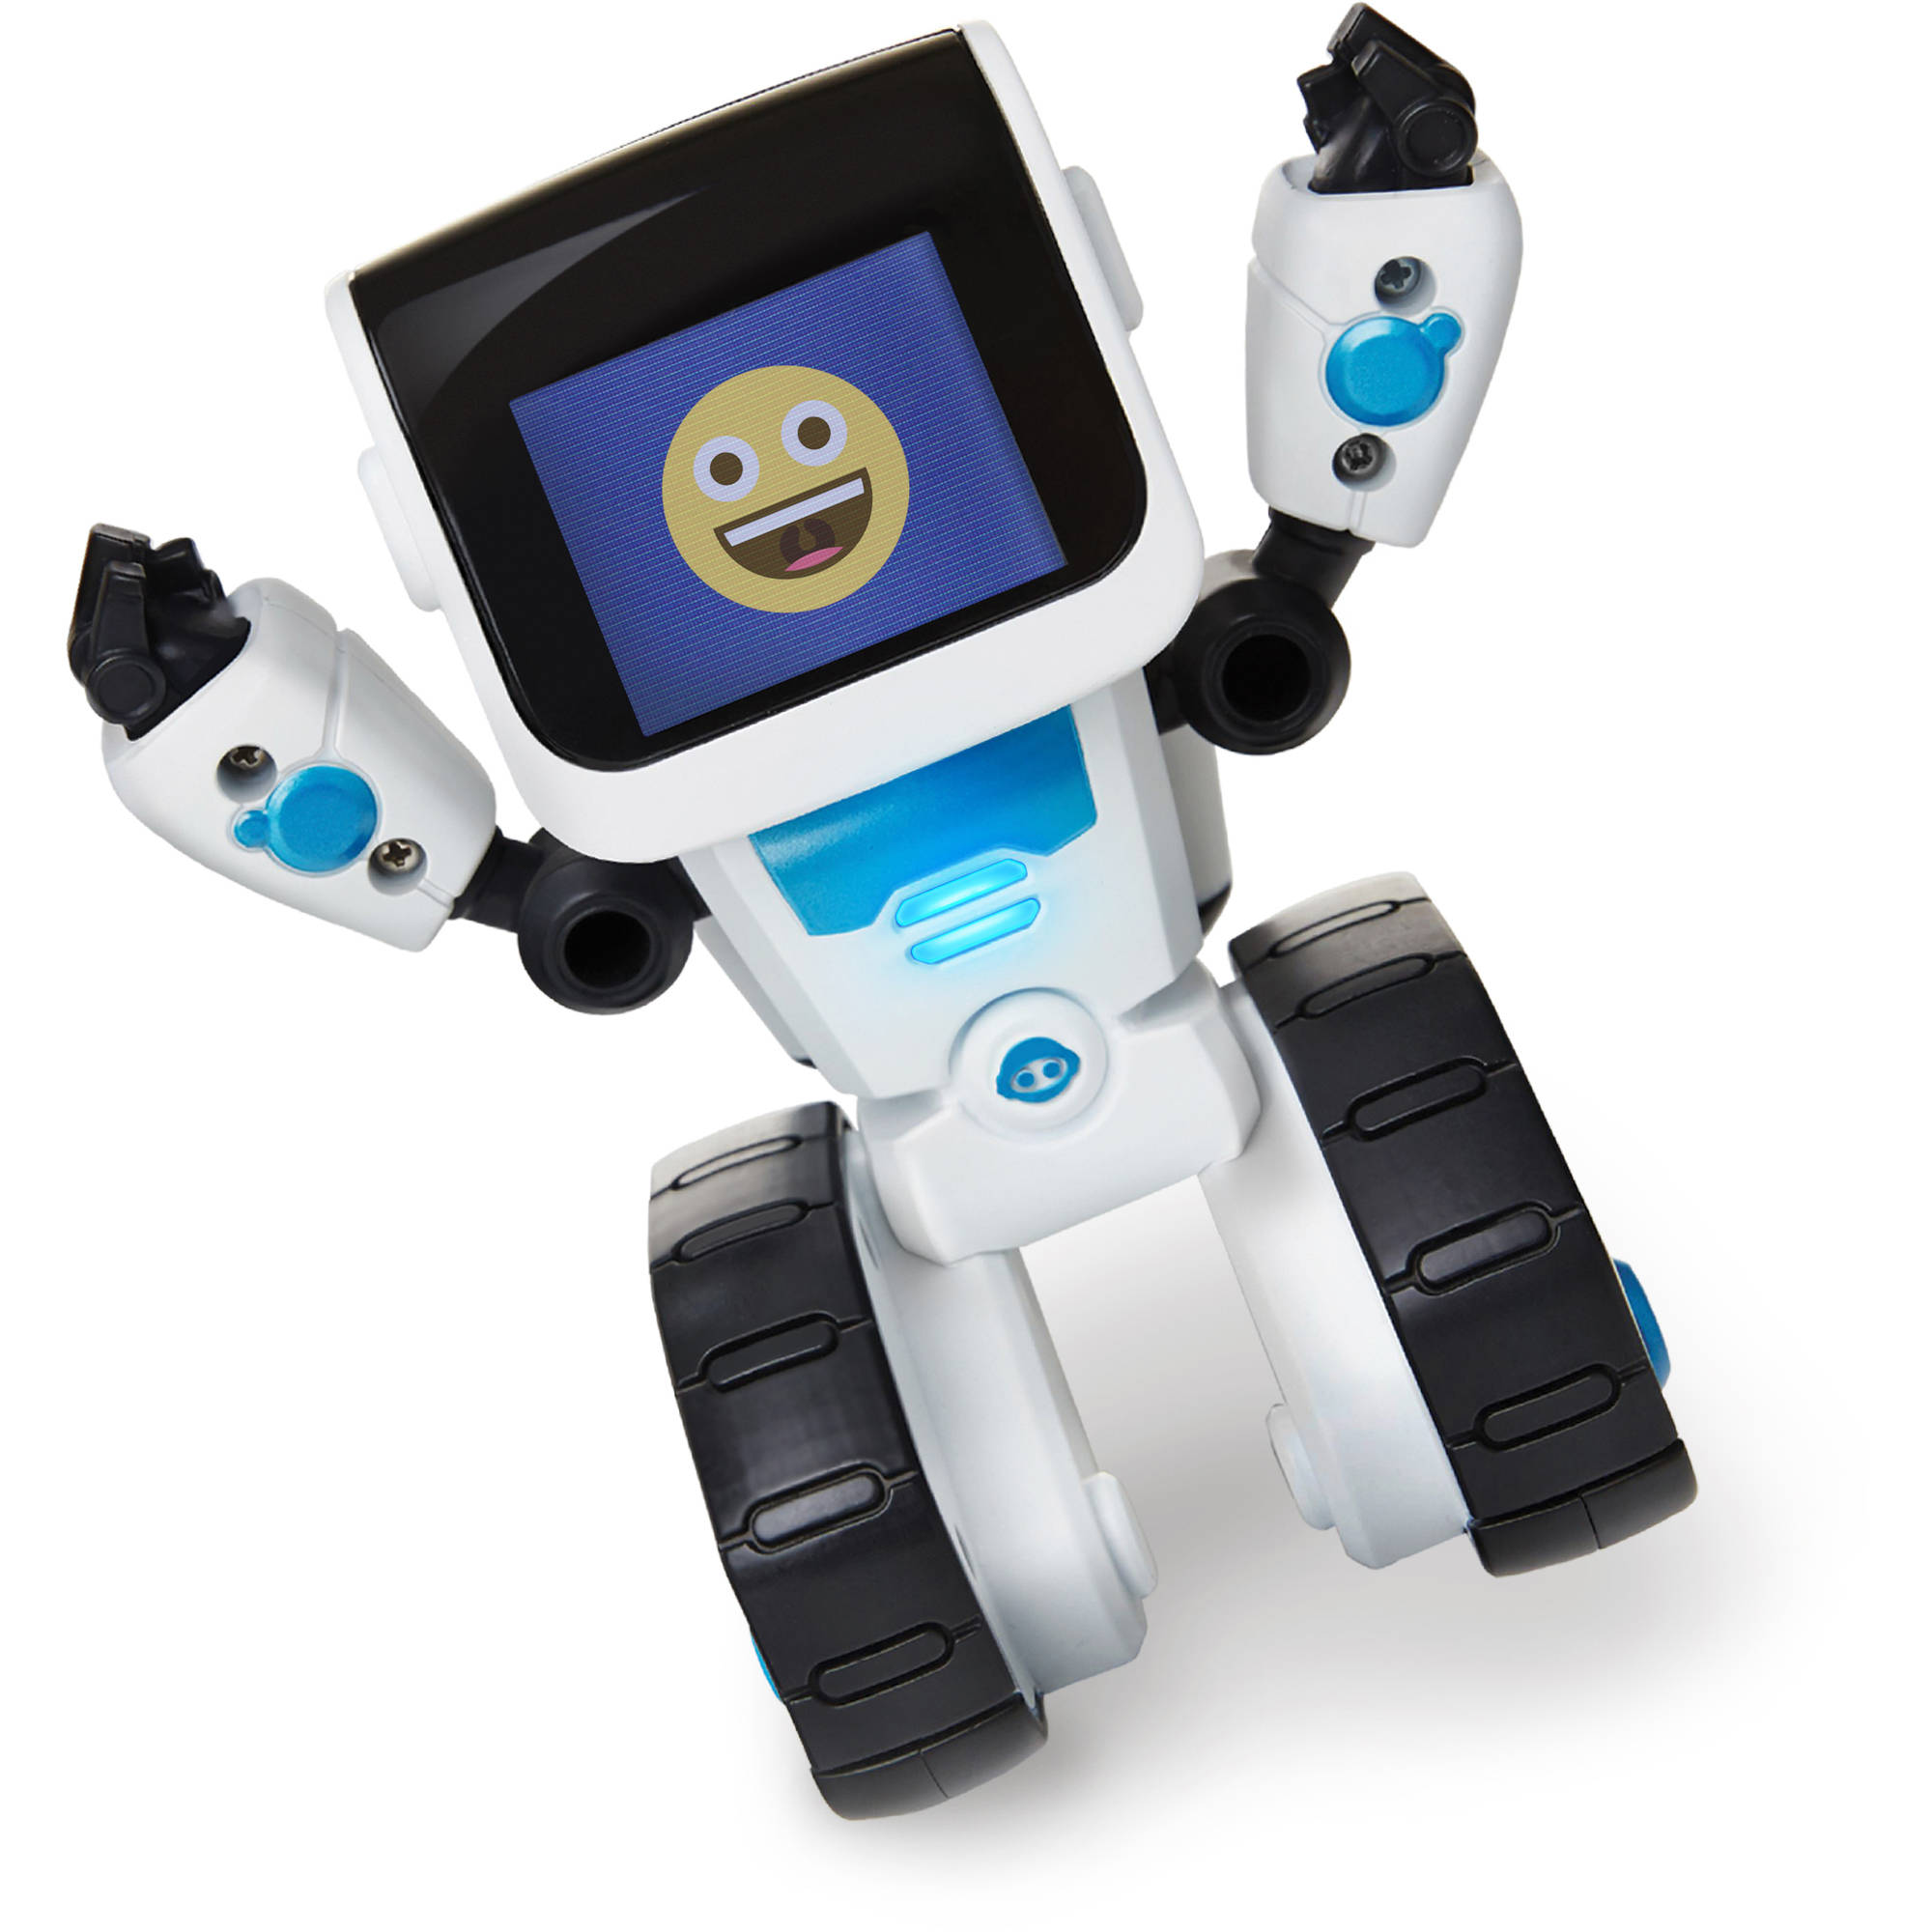 WowWee COJI Robot Toy: Learn to Code with Emojis